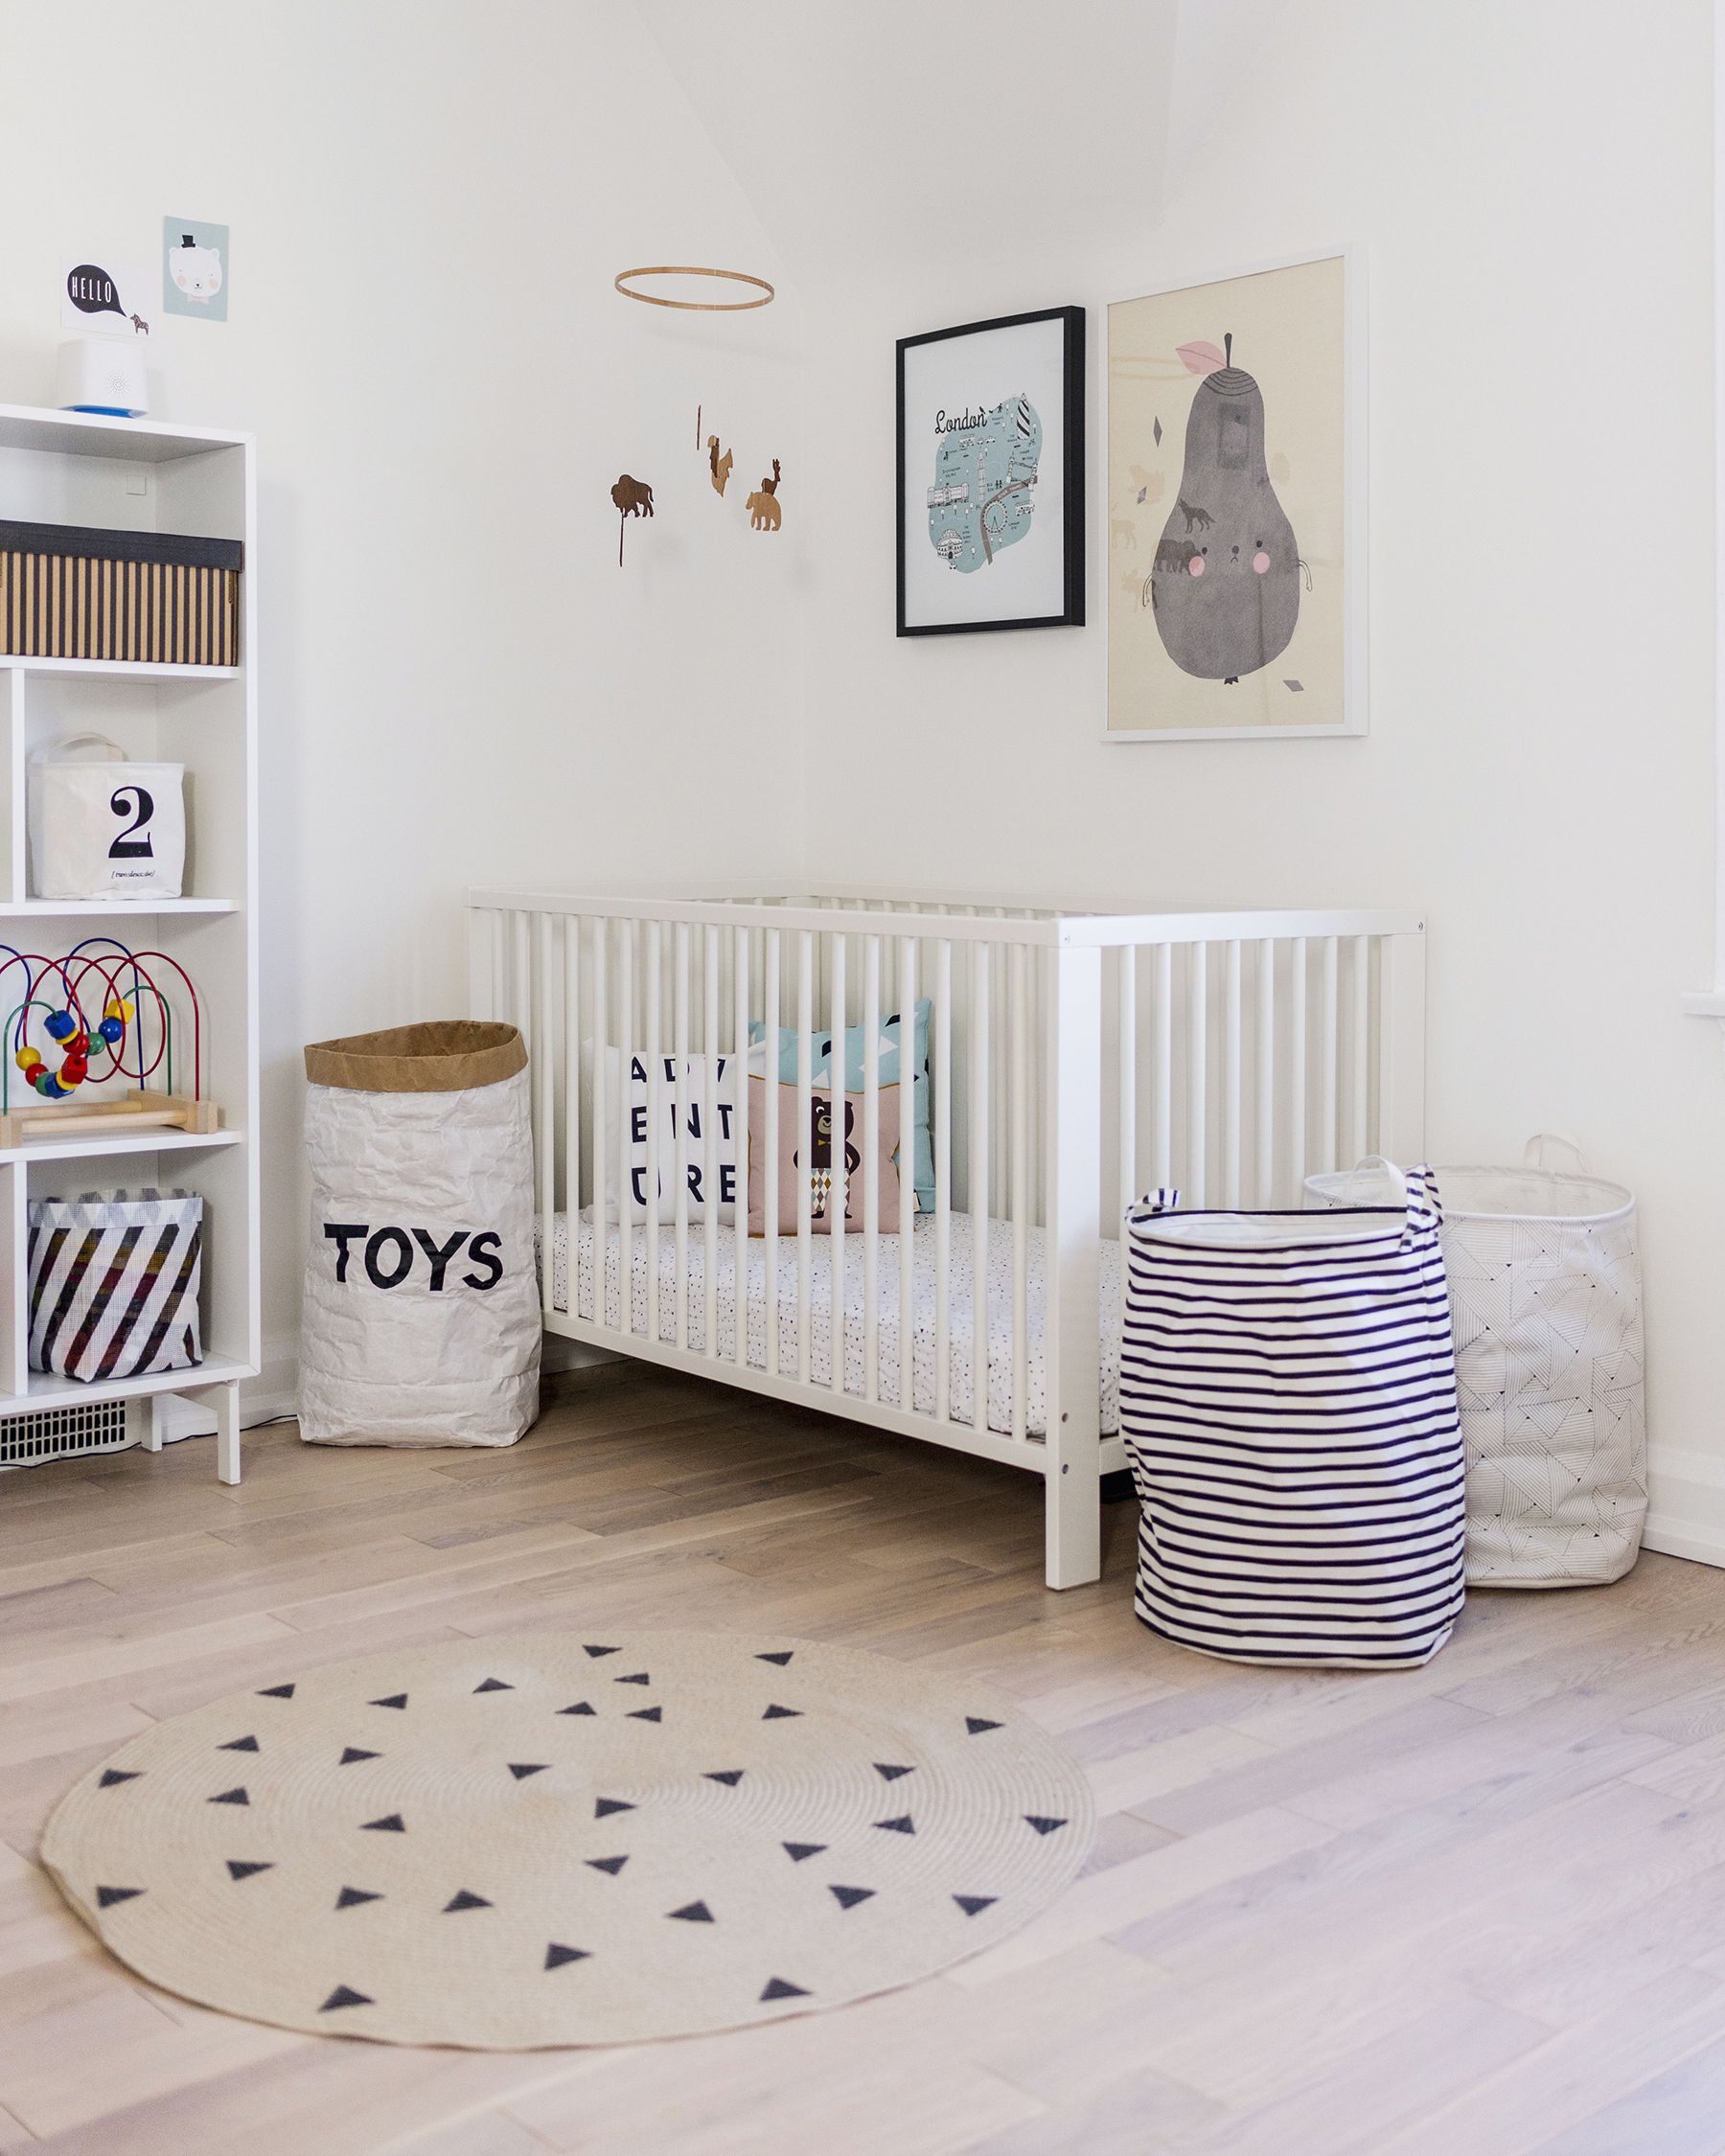 Favourite scandinavian nursery kids room decor items for Kid room decor